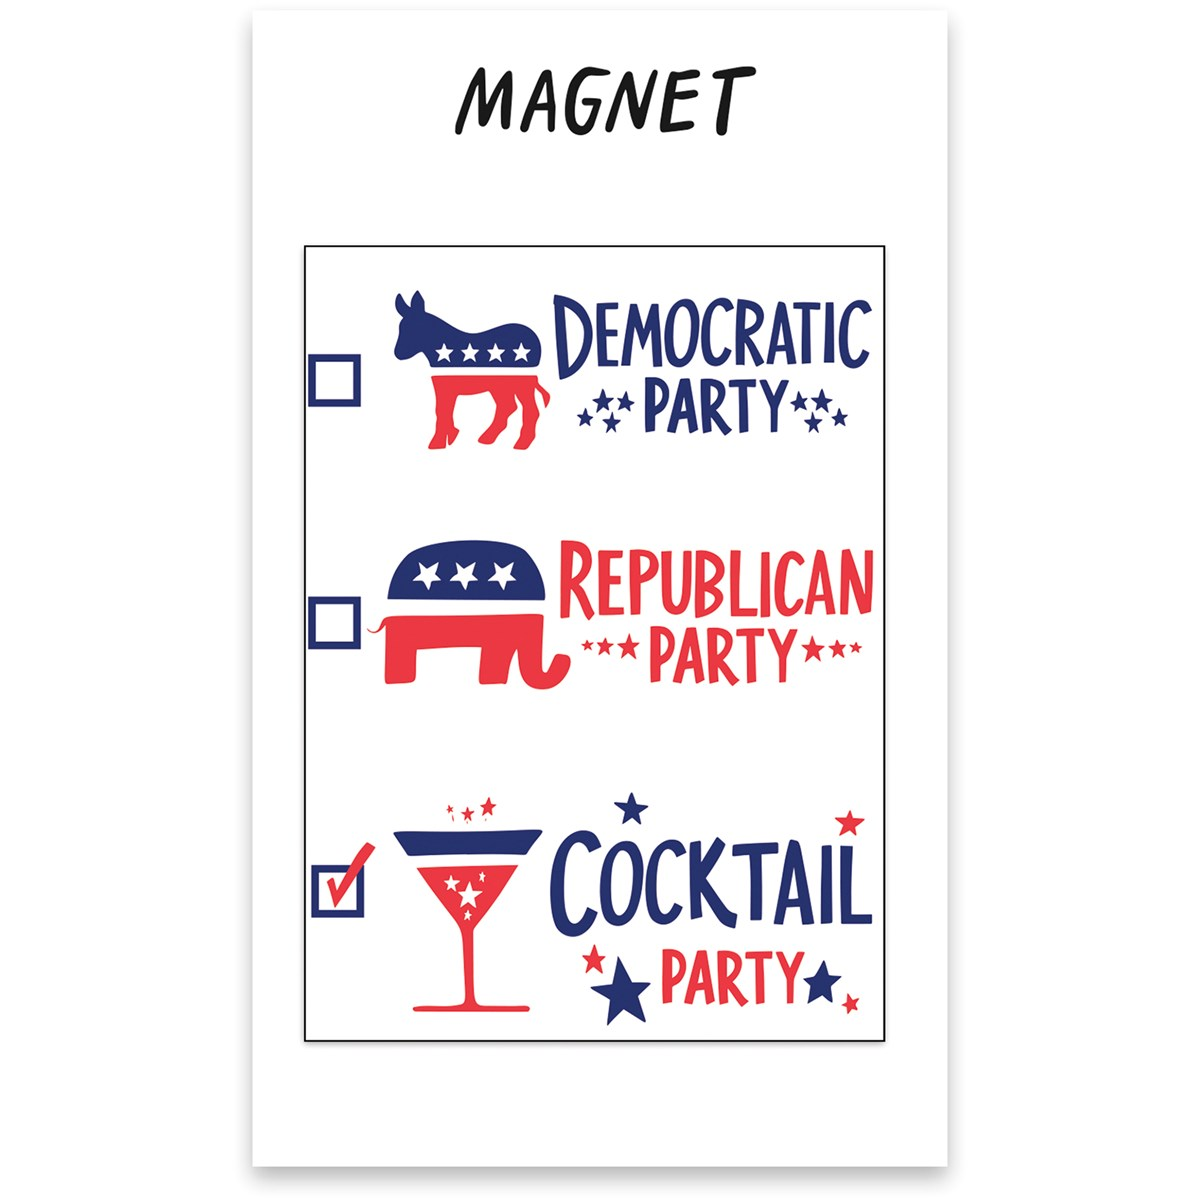 "Magnet - Cocktail Party - 2.50"" x 3.50"", Card: 3"" x 5"" - Magnet, Paper"